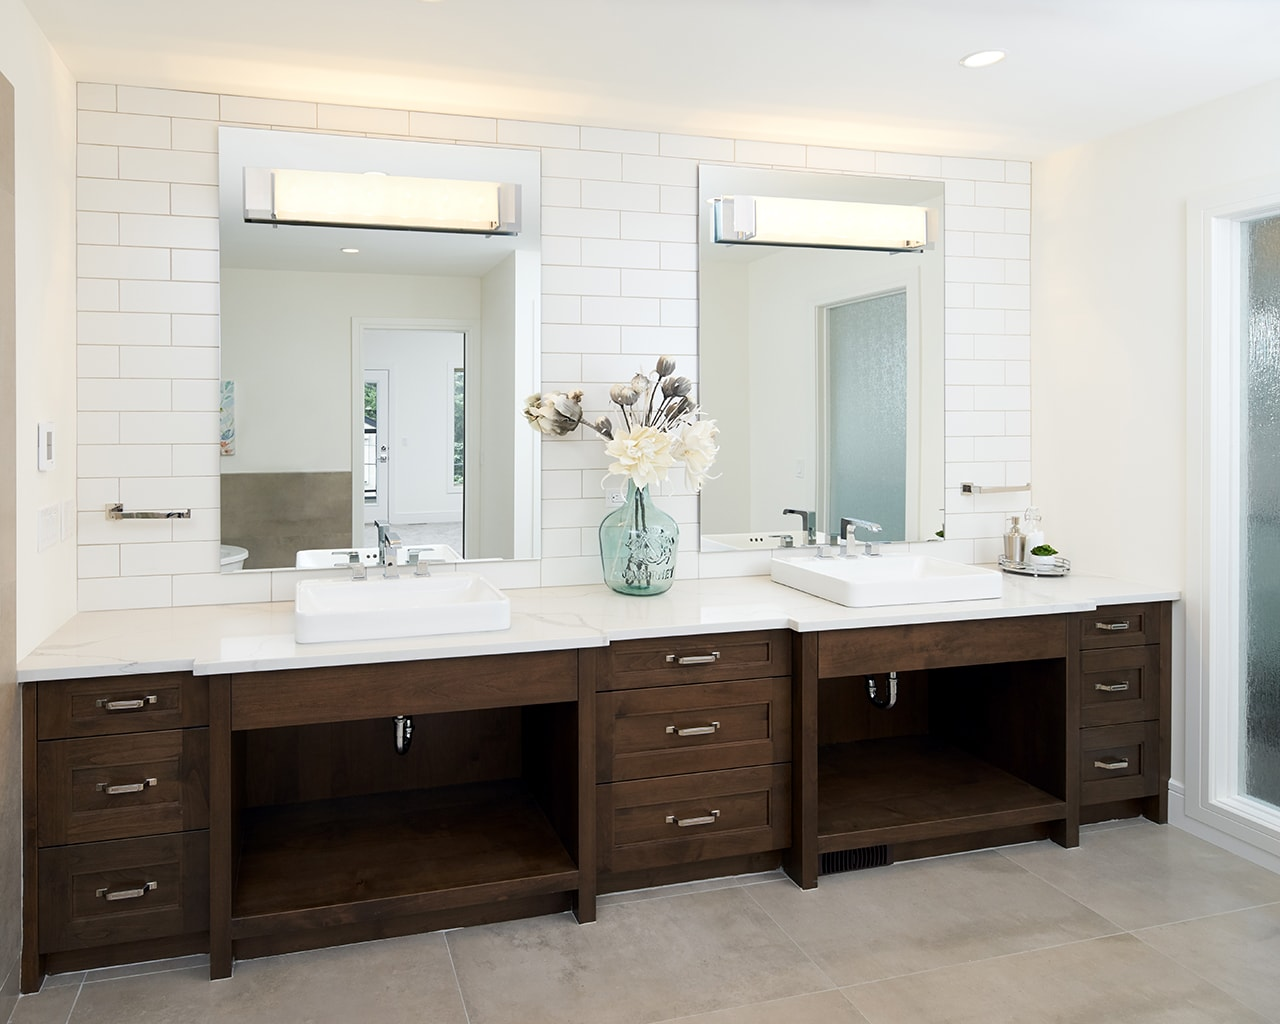 Transitional Bathroom with a Modern Twist